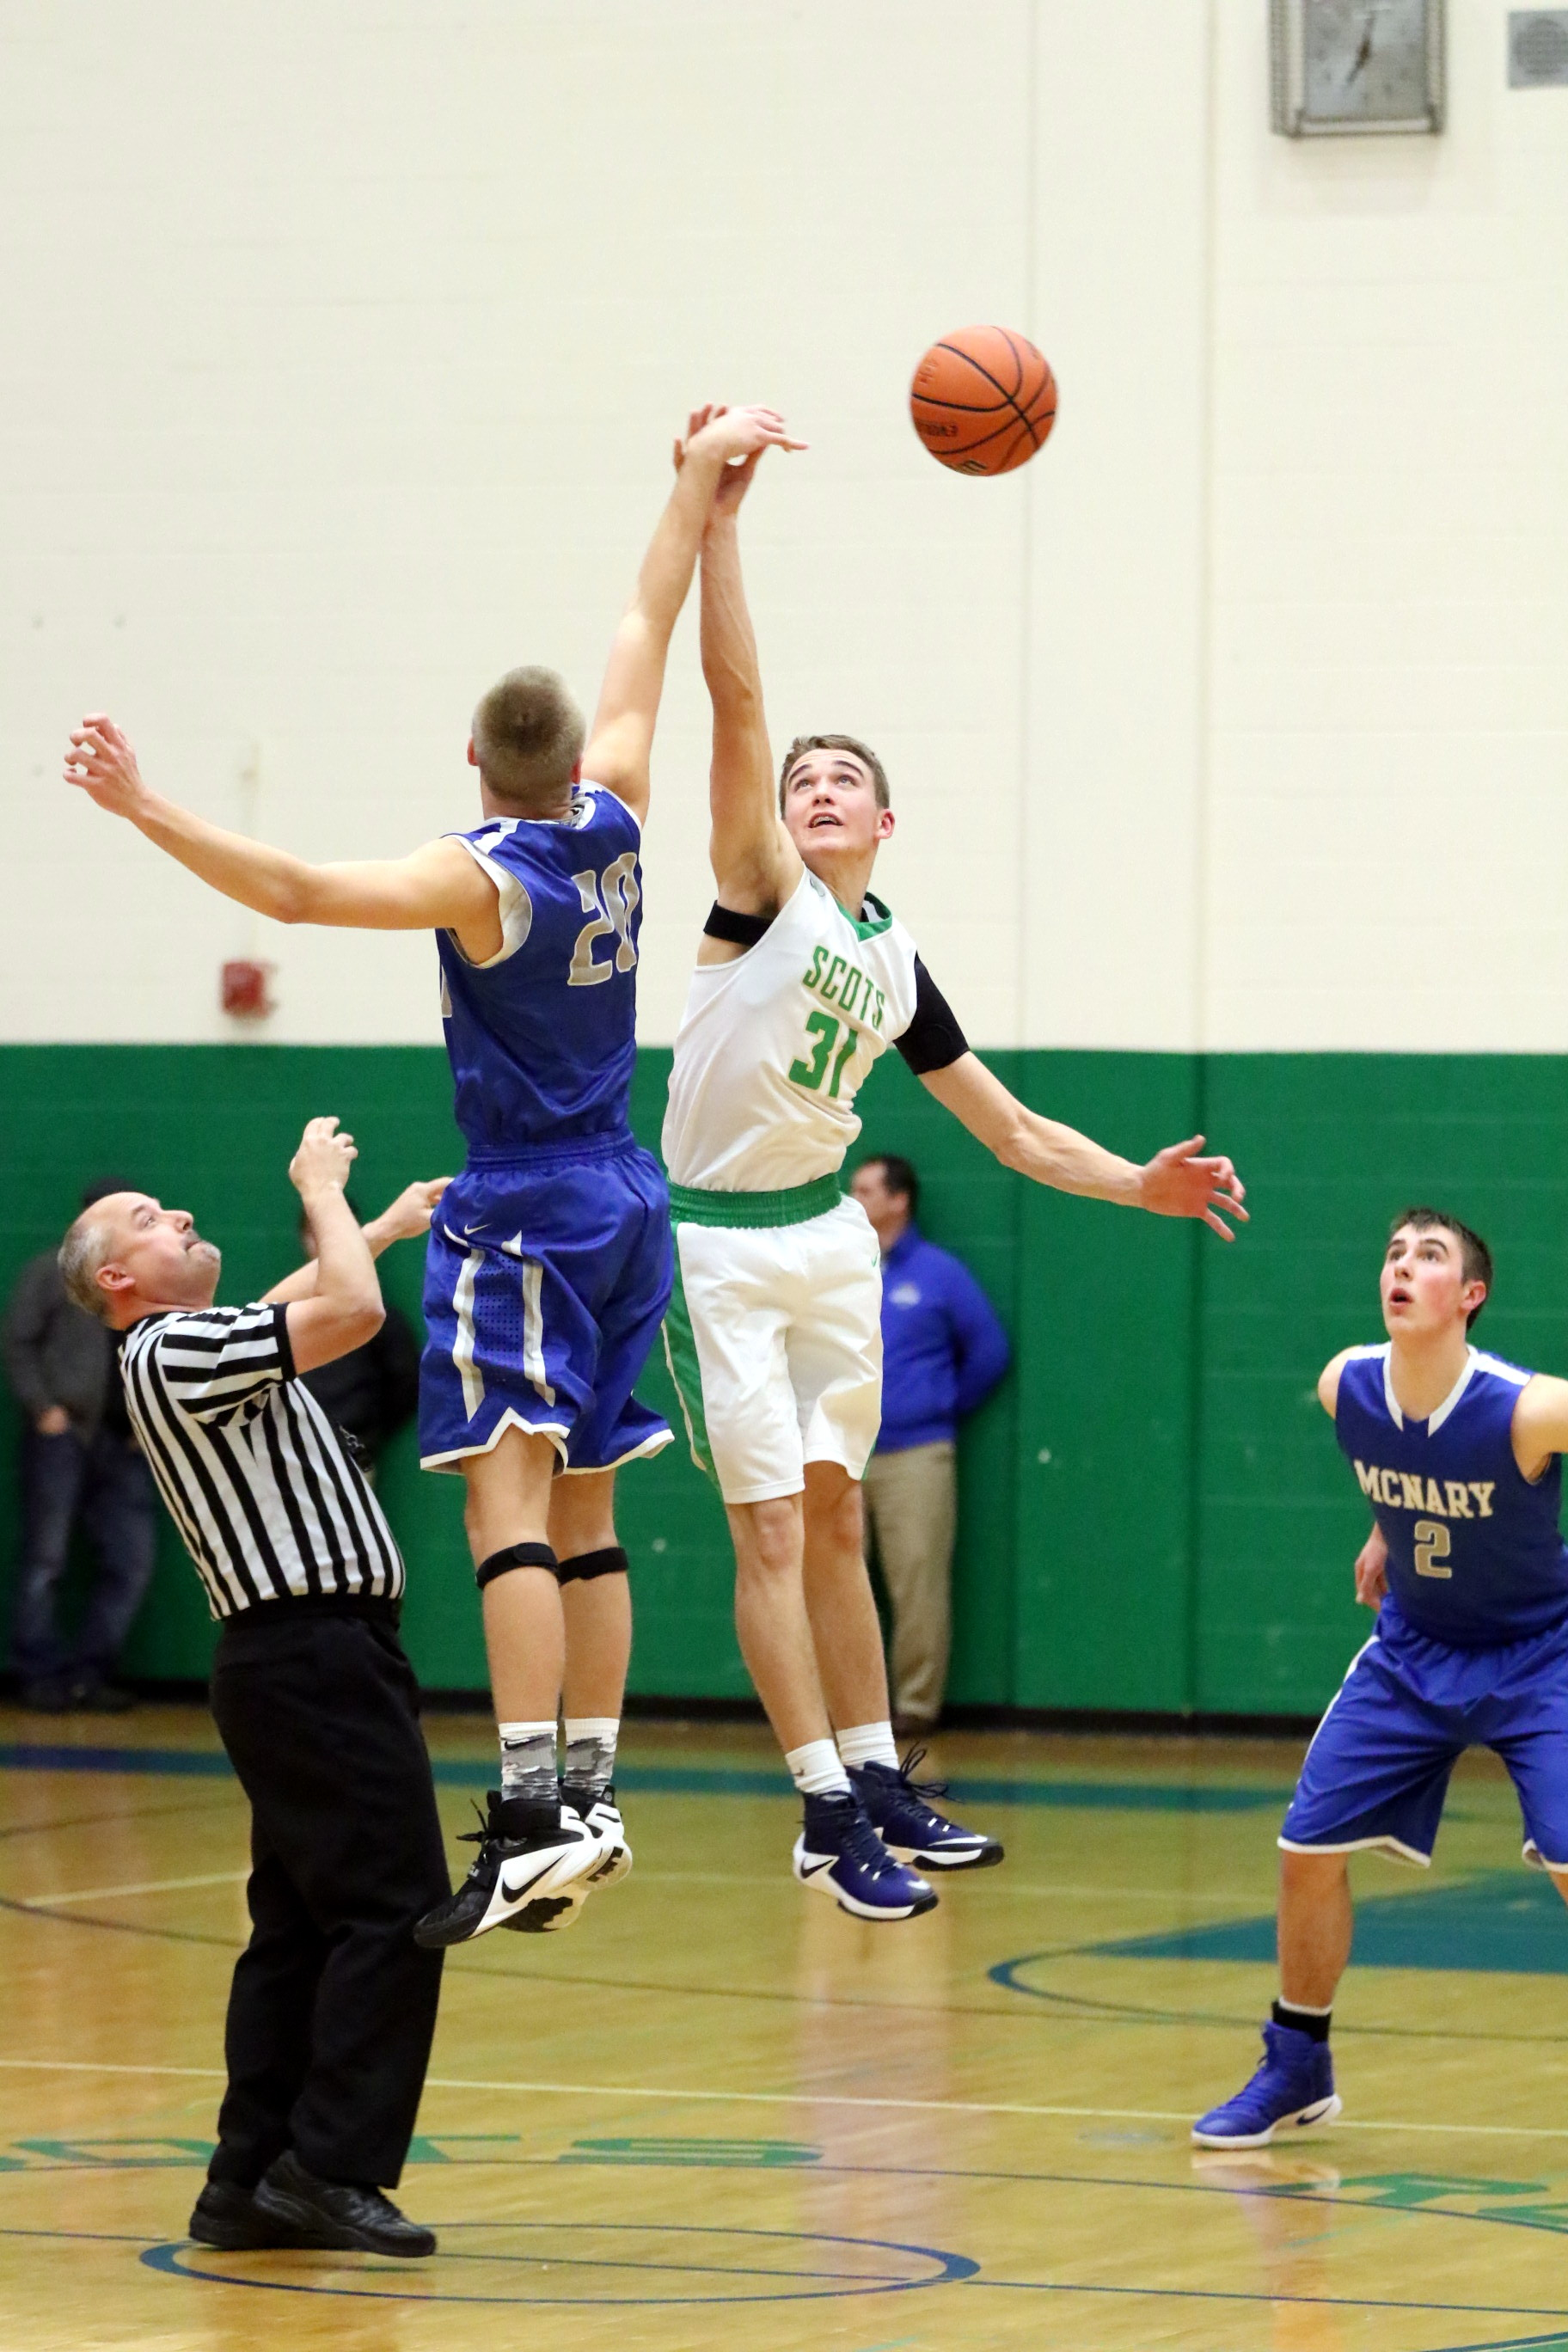 Ryan out jumps taller players regularly. Photo by Kent Brewer.